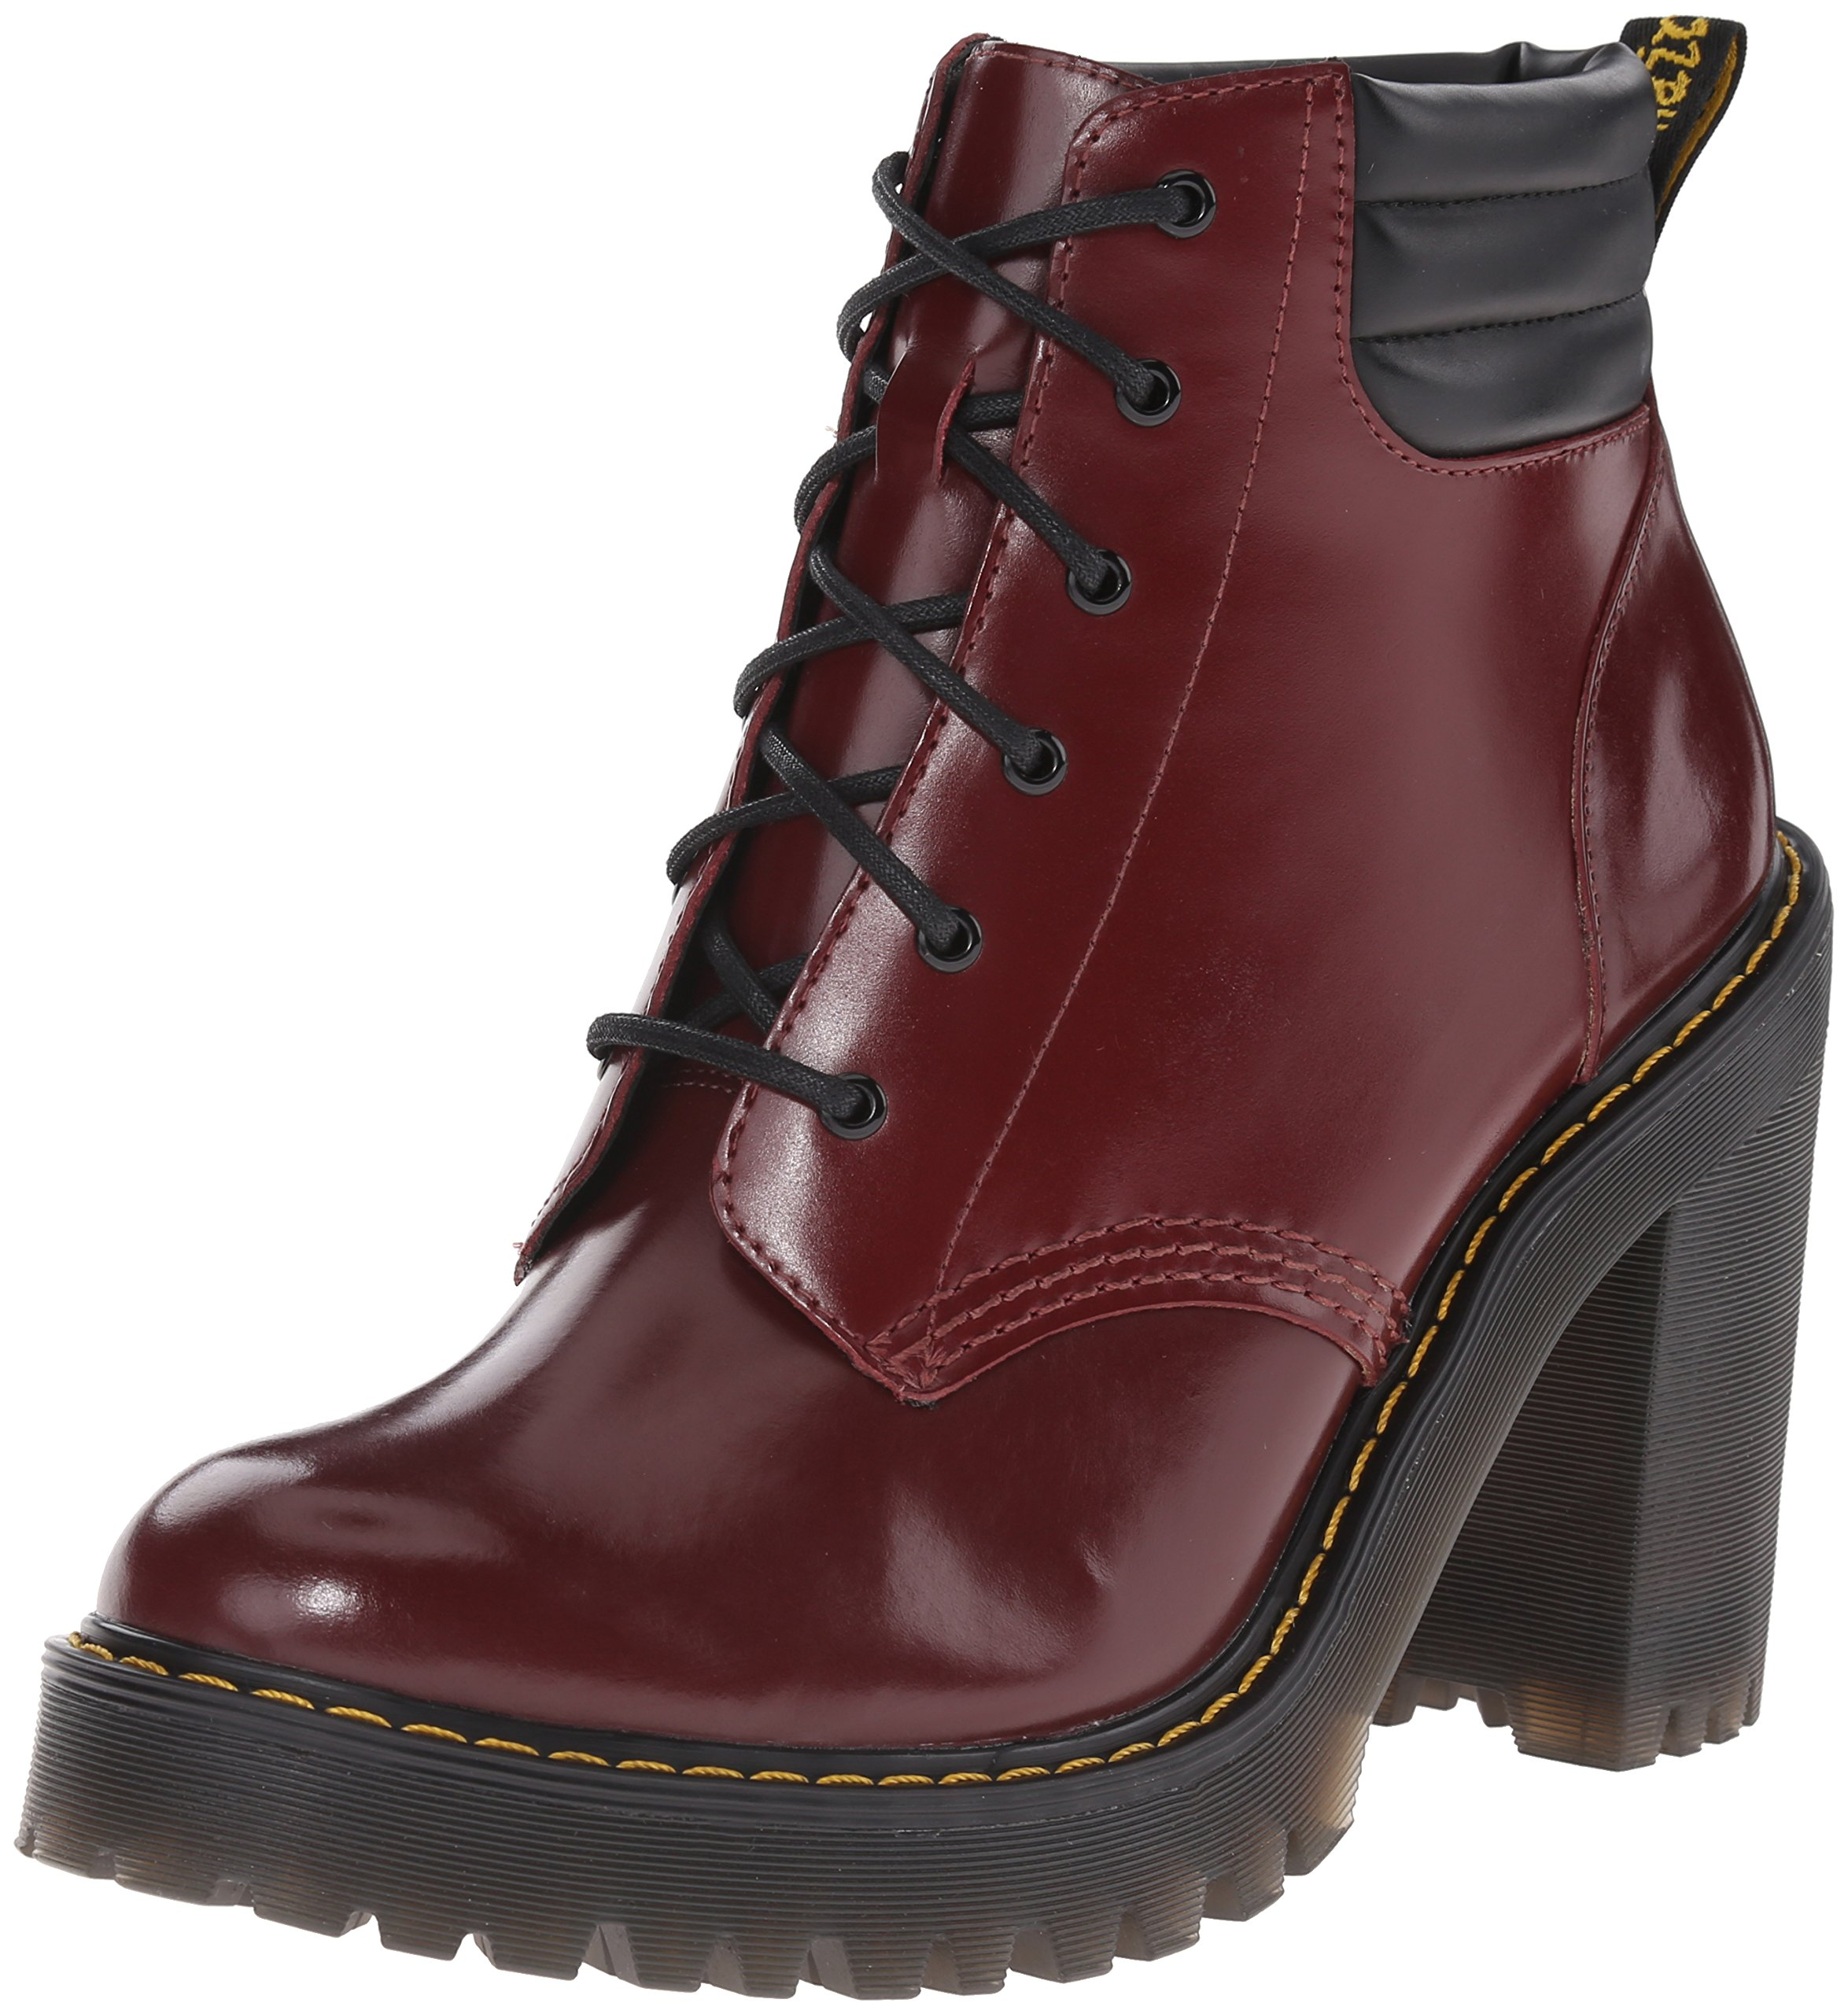 Dr. Martens Women's Persephone Dress Pump, Shiraz, 5 UK/7 M US